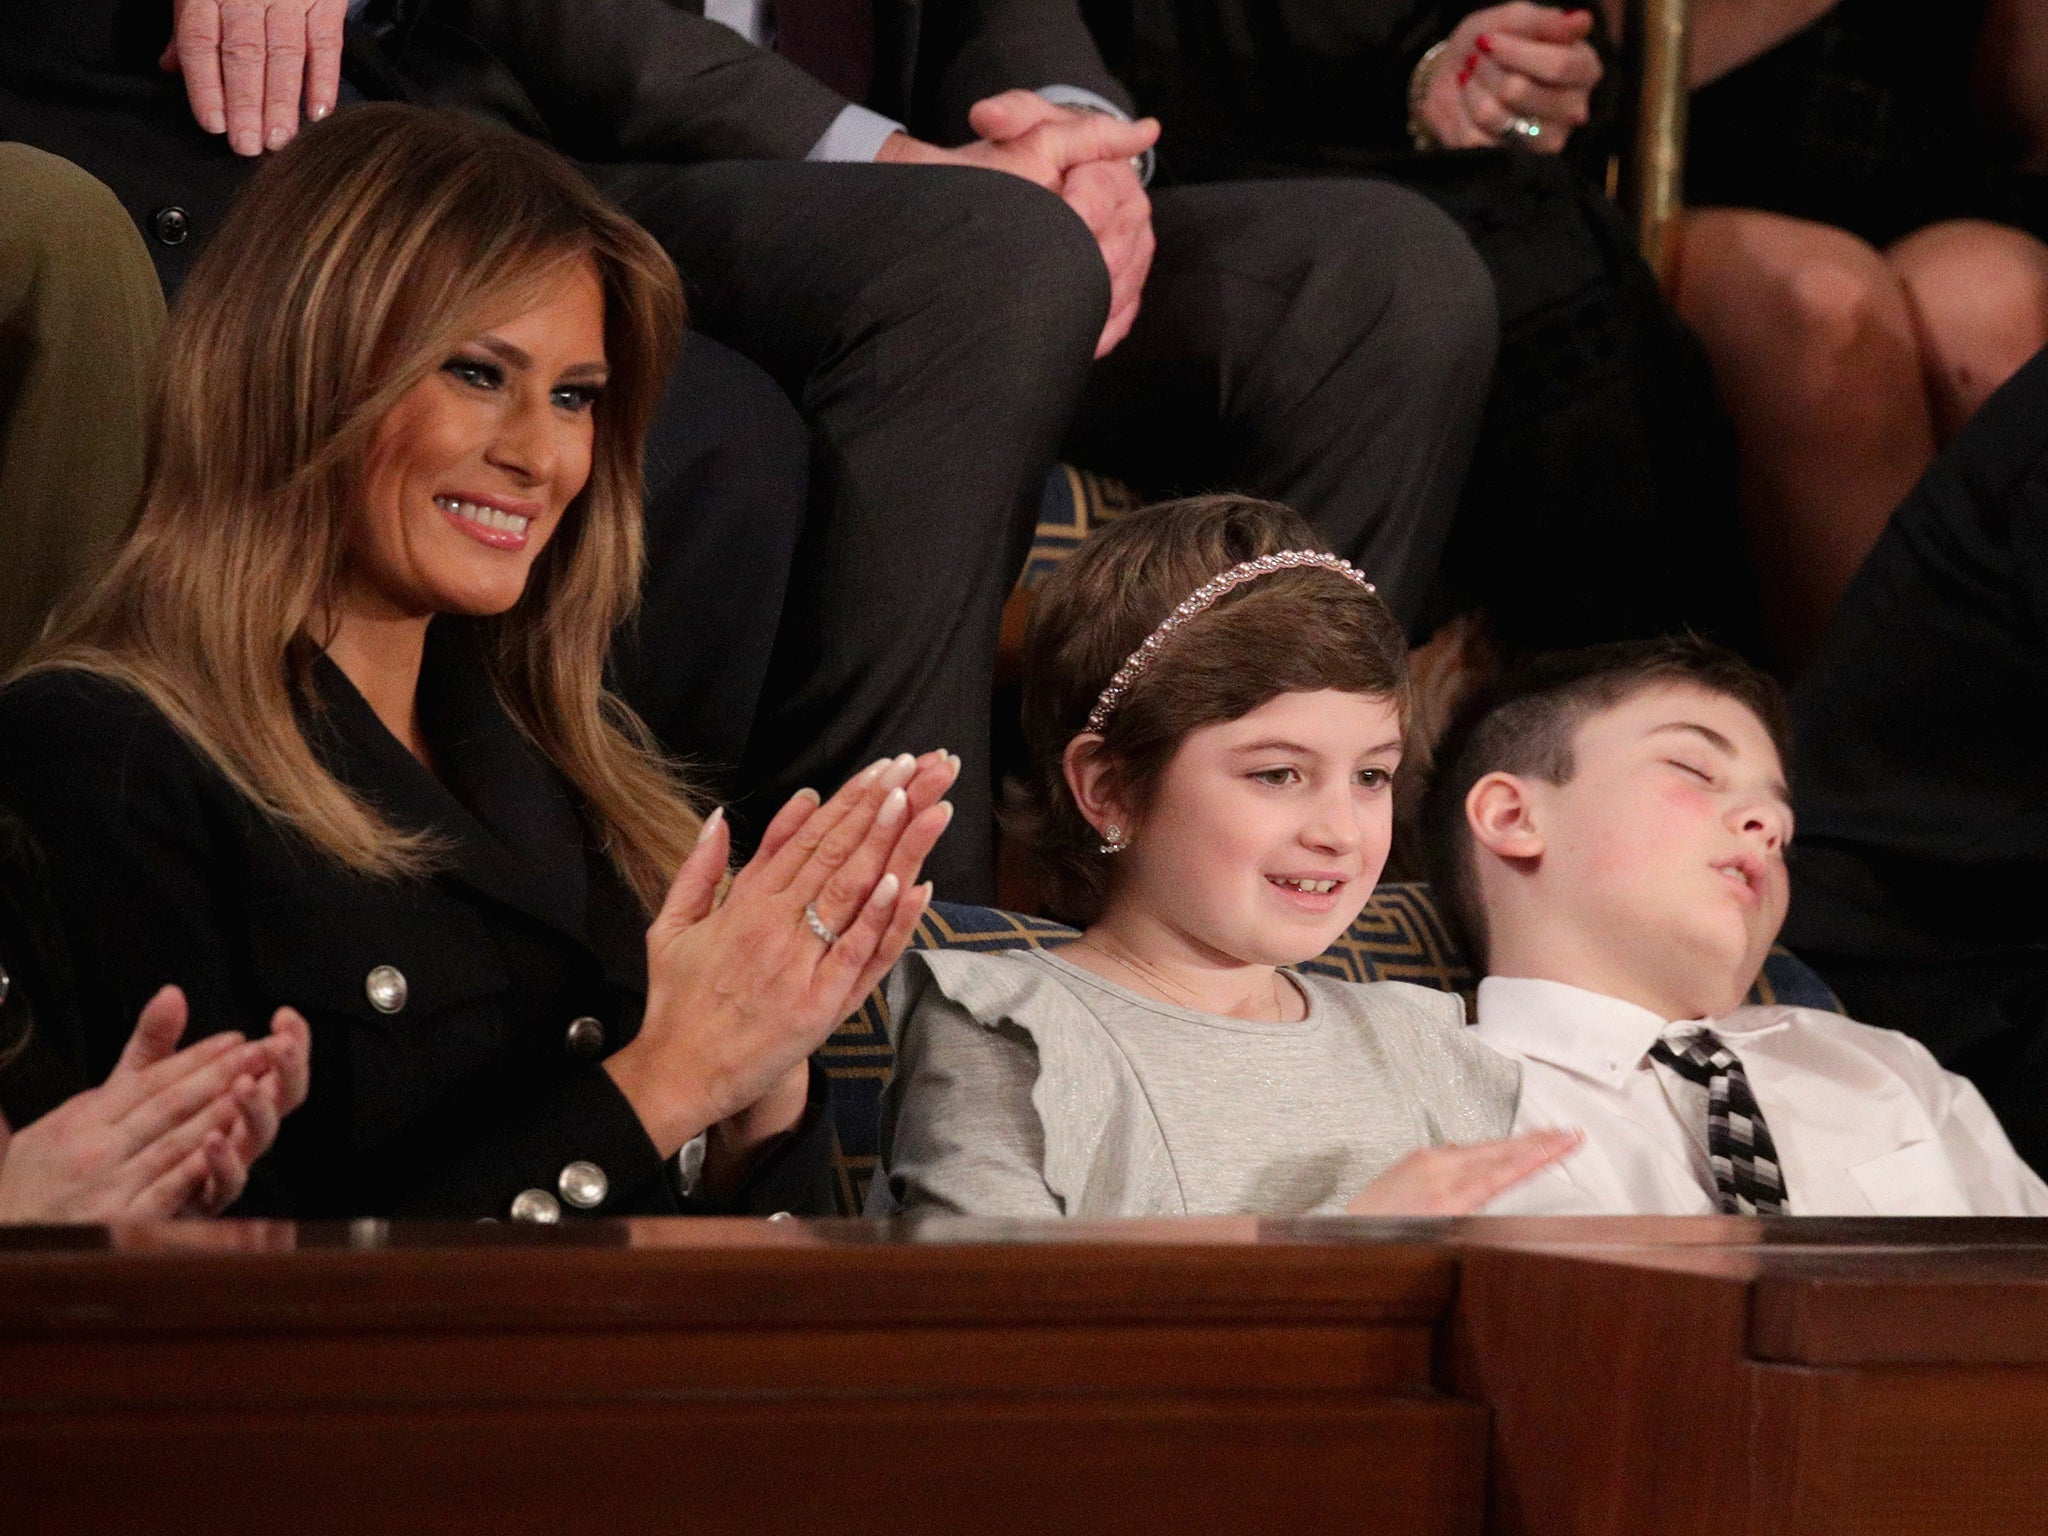 Joshua Trump: Schoolboy bullied over surname wins acclaim after falling asleep at State of the Union